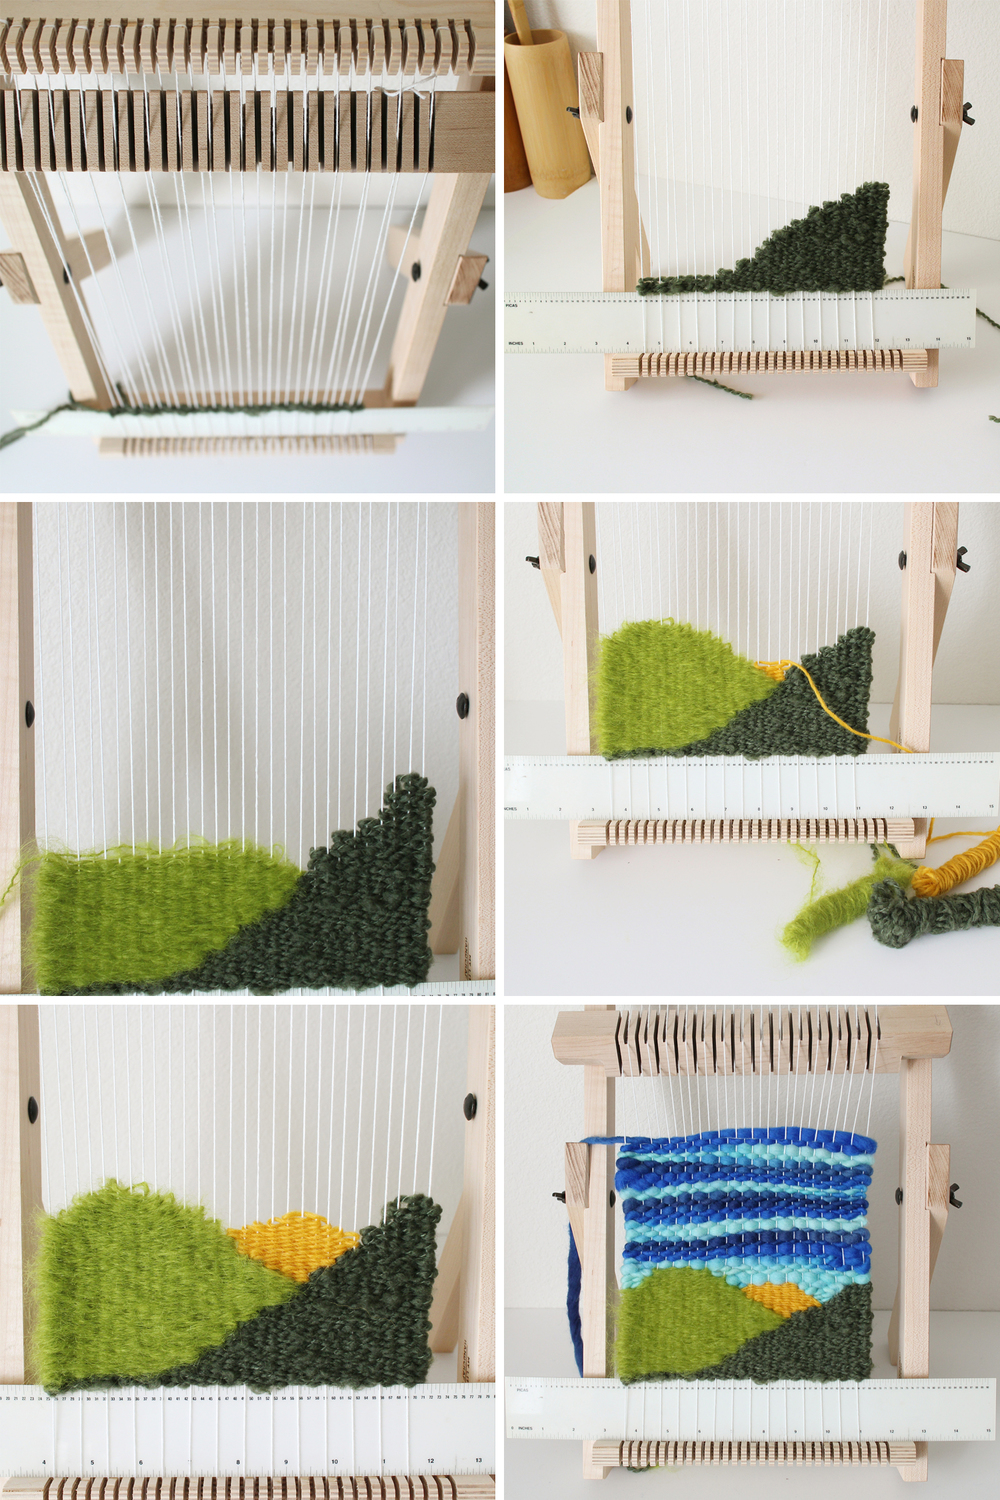 While I was making the weaving I documented it on Instagram as part of my  100 day project.